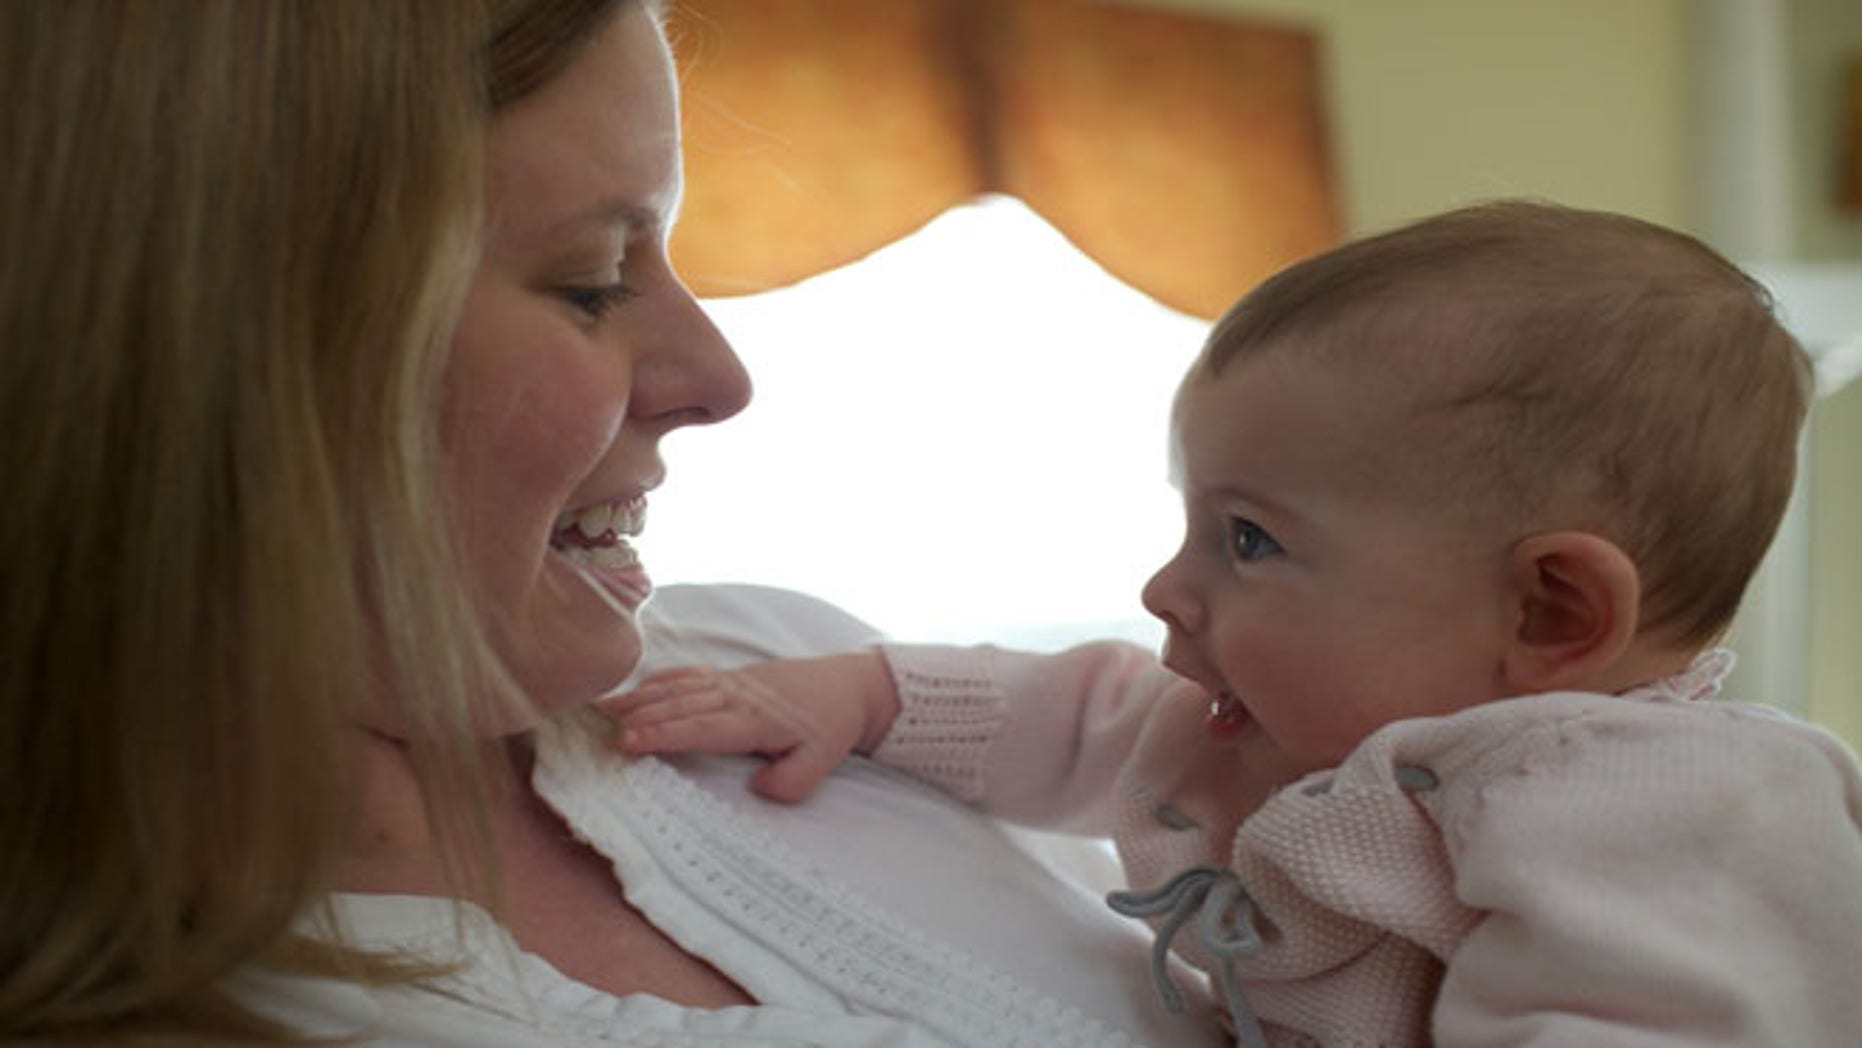 In this photo taken Sept. 24, 2013, Holly Sloan interacts with her baby Amelia at their home in Warrenton, Va. Ameliaâs family enrolled in a study that is deciding the DNA of babies, as researchers explore whether gene-mapping one day should become a part of newborn care.